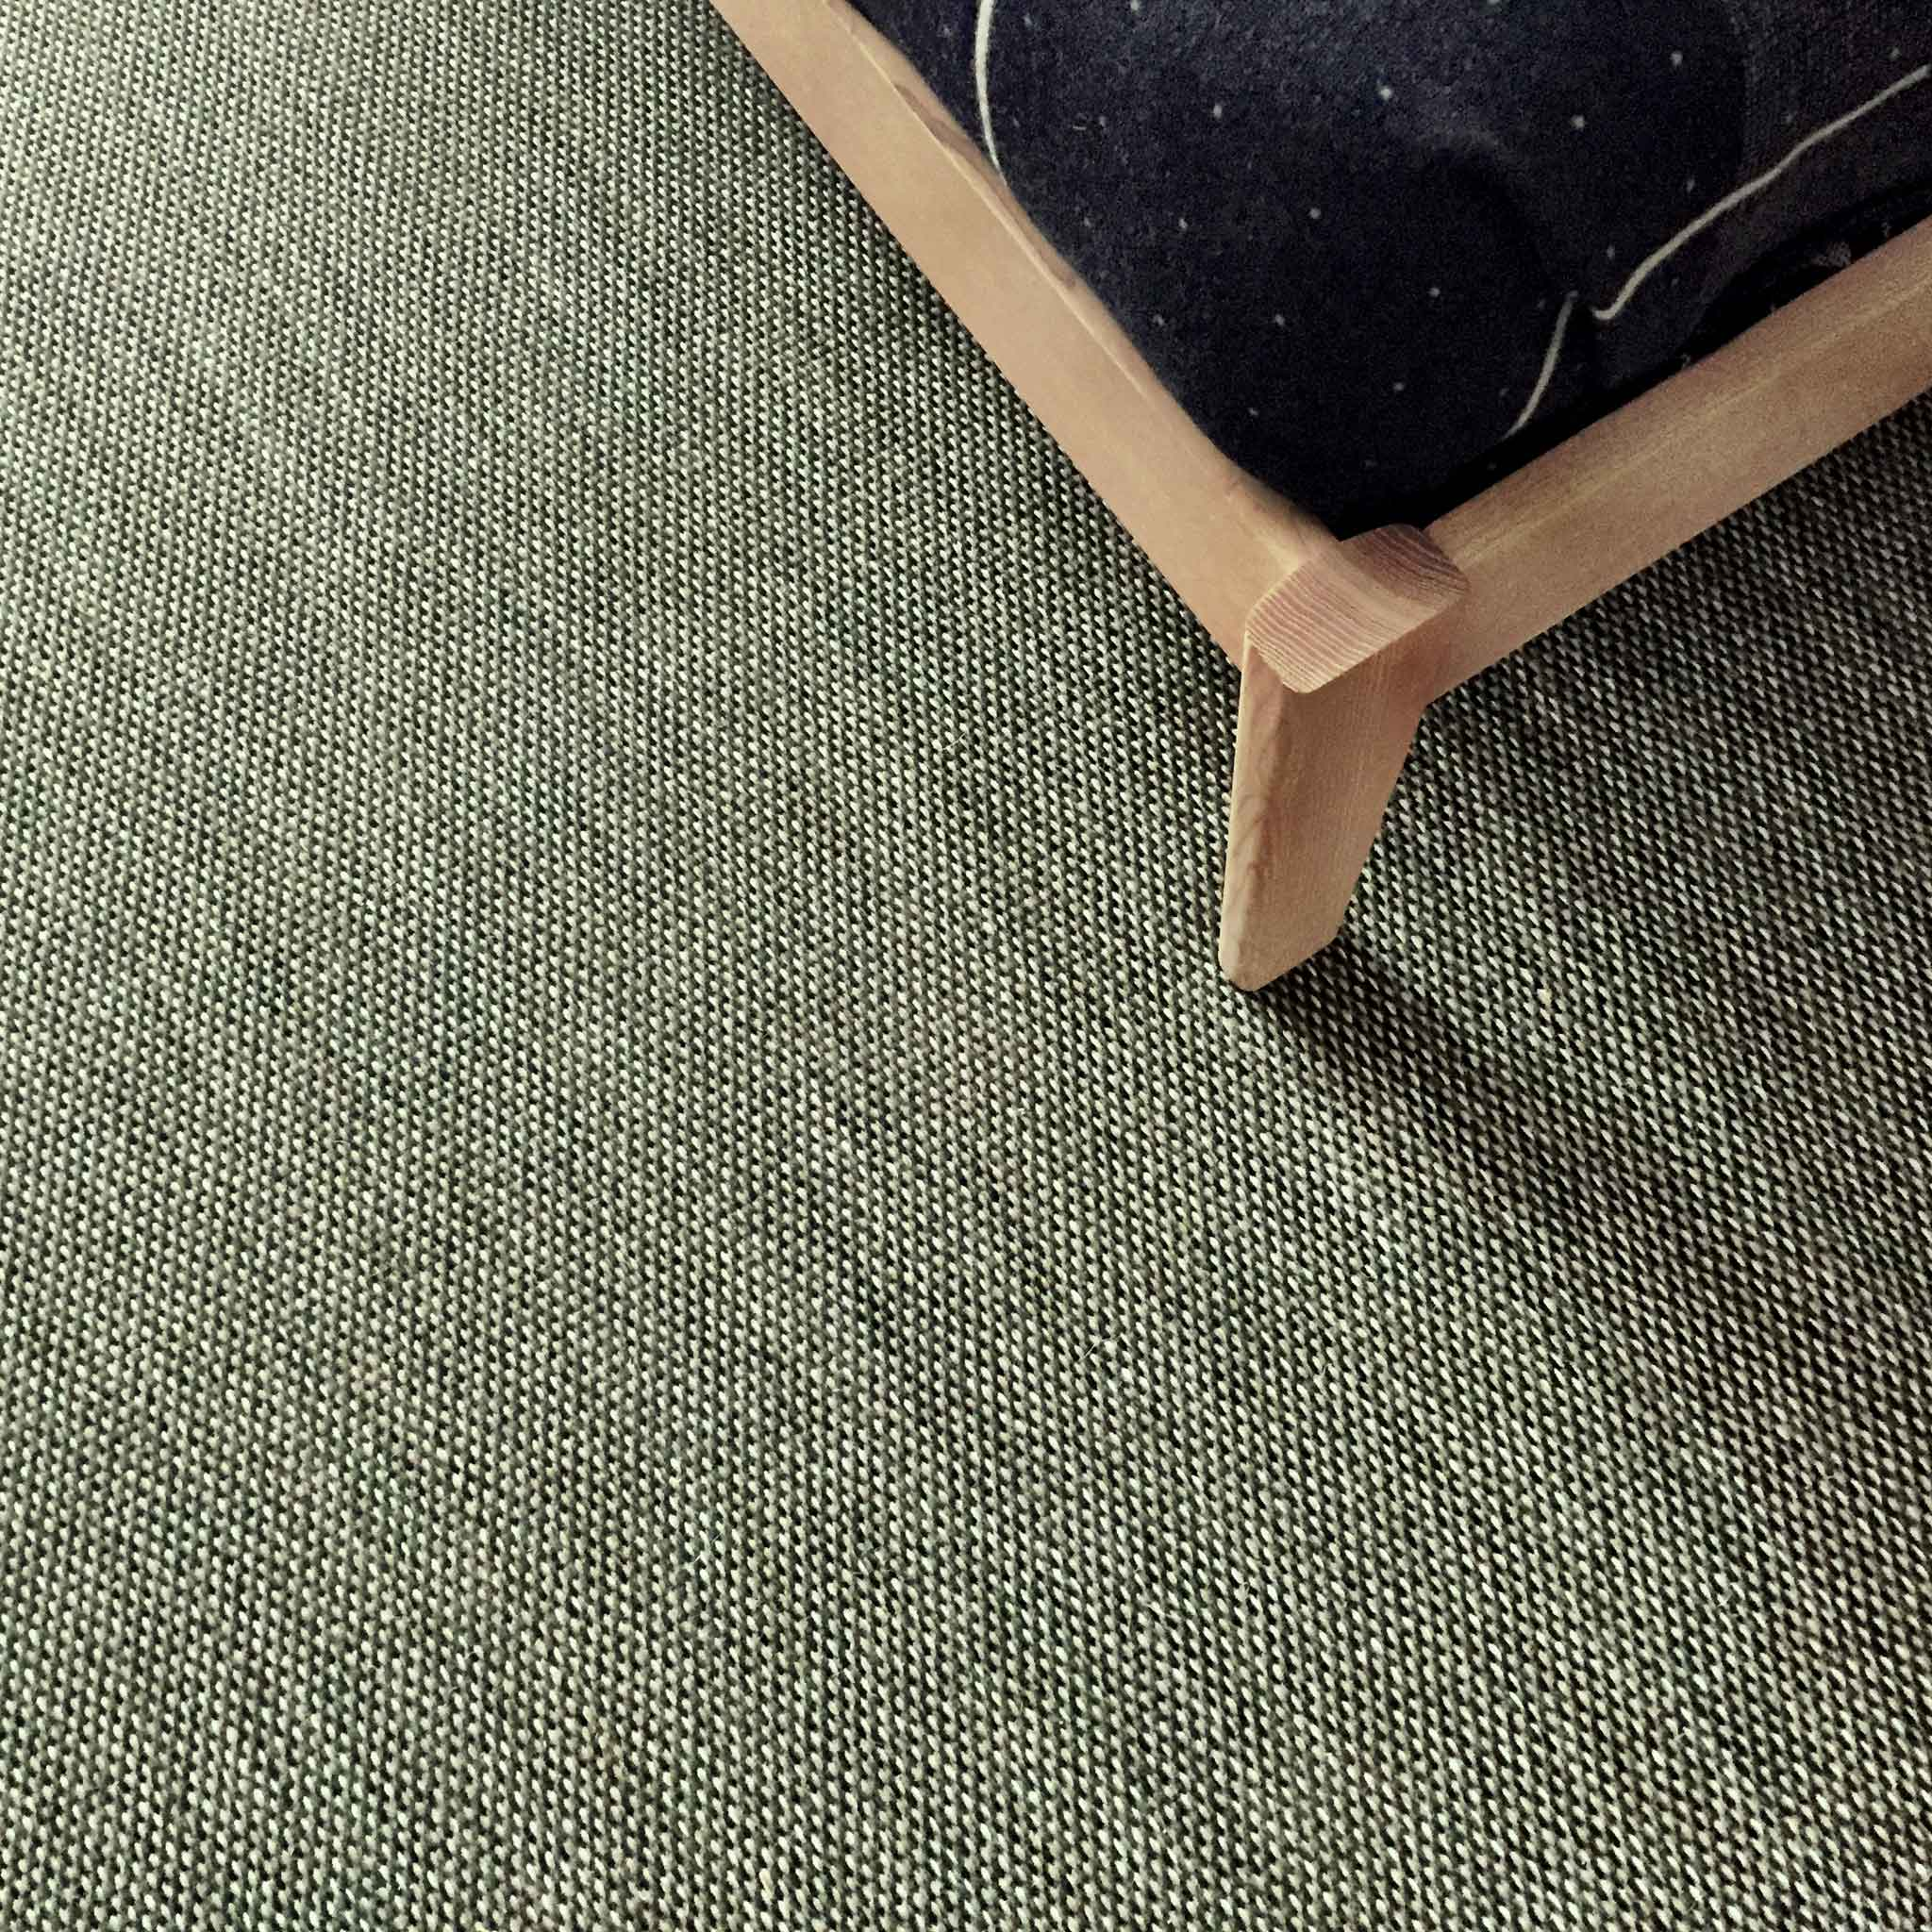 'Tripple' by Kasthall shown in detail. Woven in 100% wool on a linen warp, the character arrises from three different yarn blends that form a marble effect on the subtle, finely patterned surface. | Image by The Ruggist.